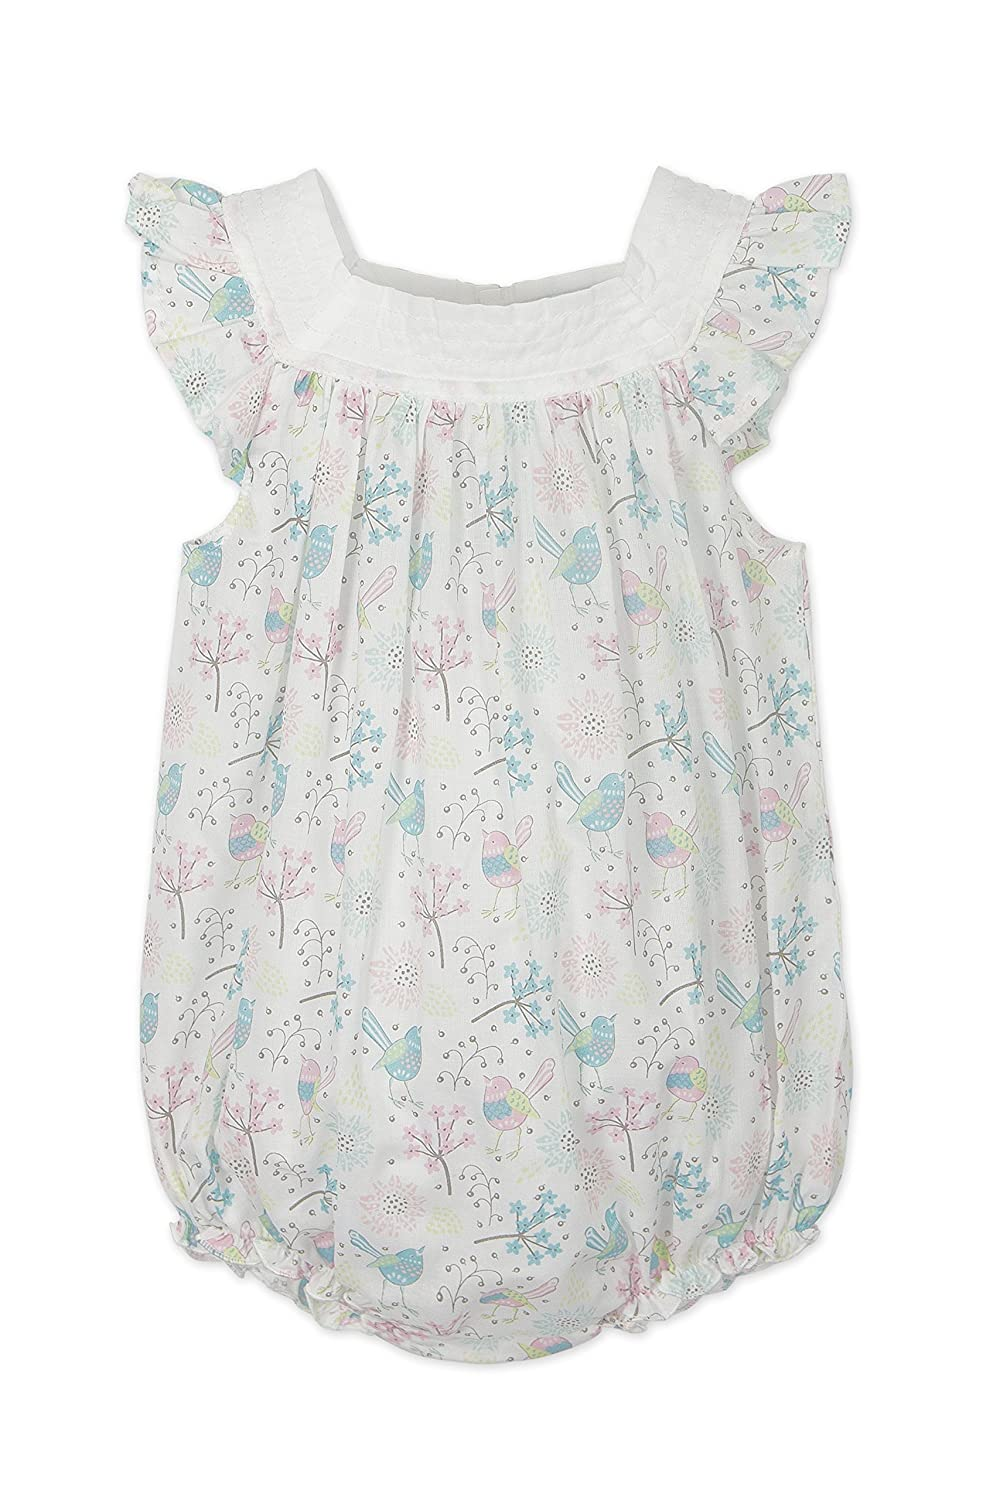 Feather Baby Girls Clothes Pima Bubble National uniform free shipping Woven Cotton Neck 70% OFF Outlet Square